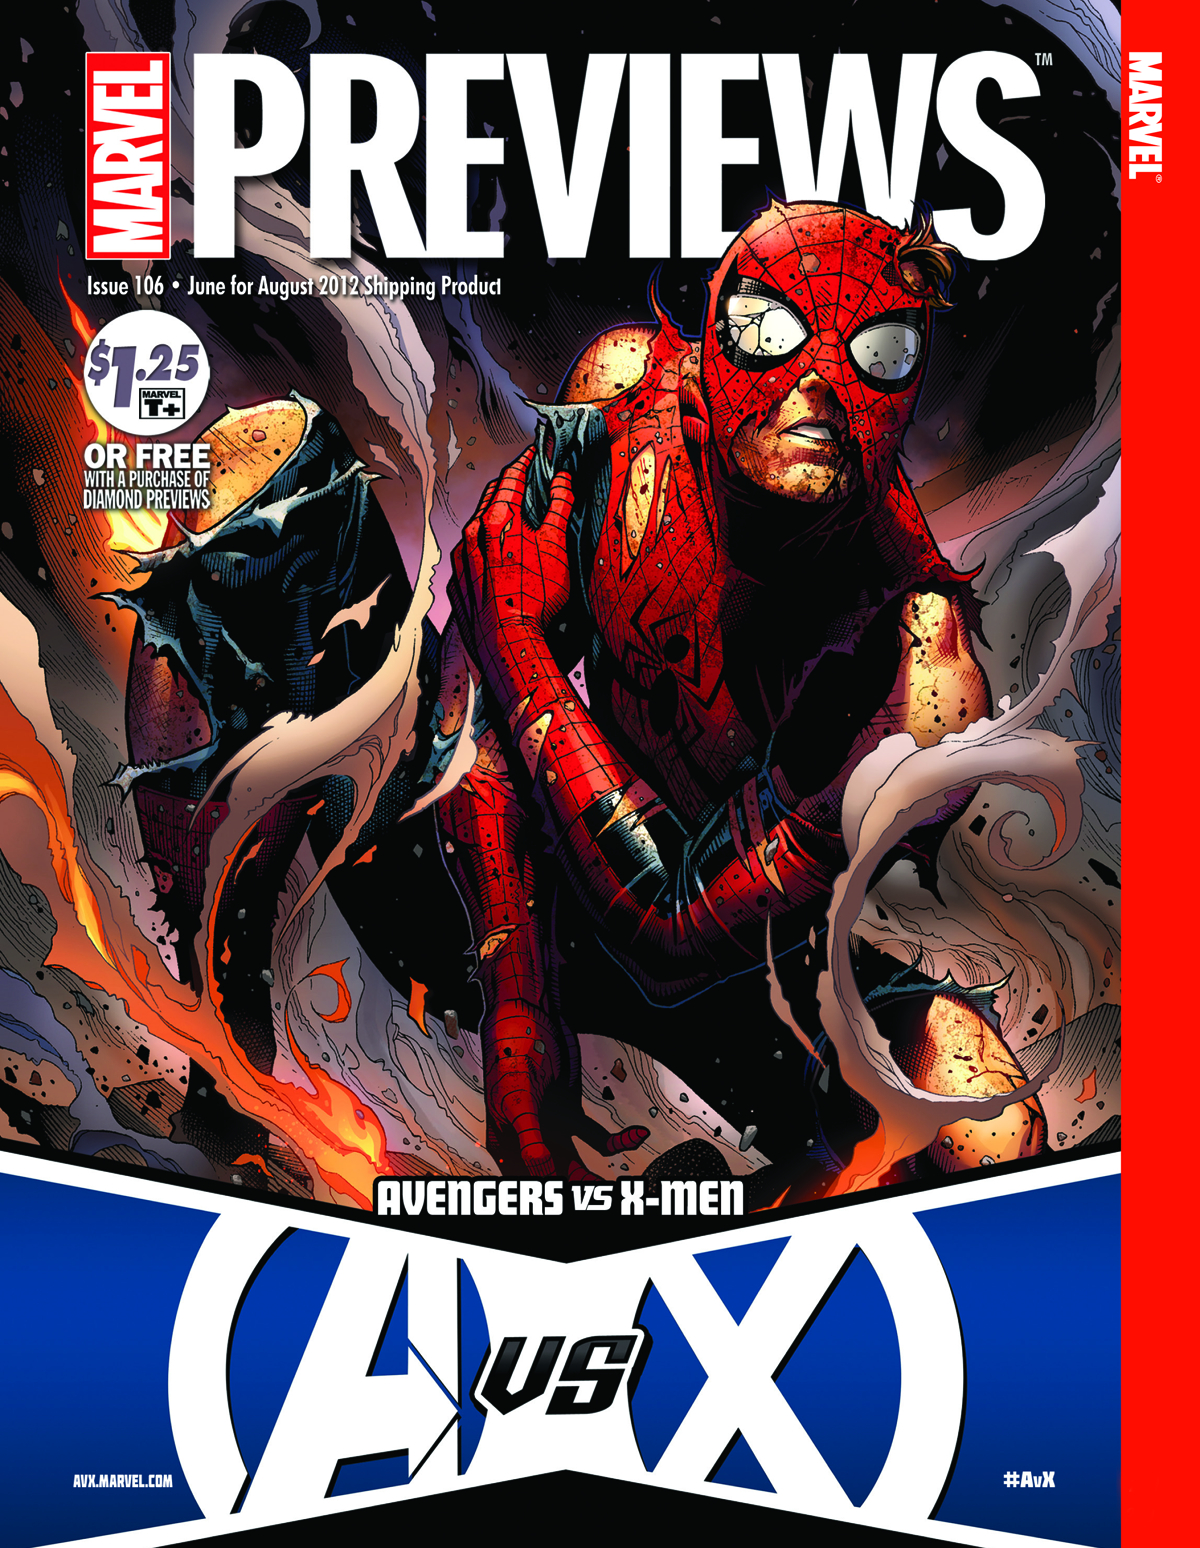 MARVEL PREVIEWS JUNE 2012 EXTRAS